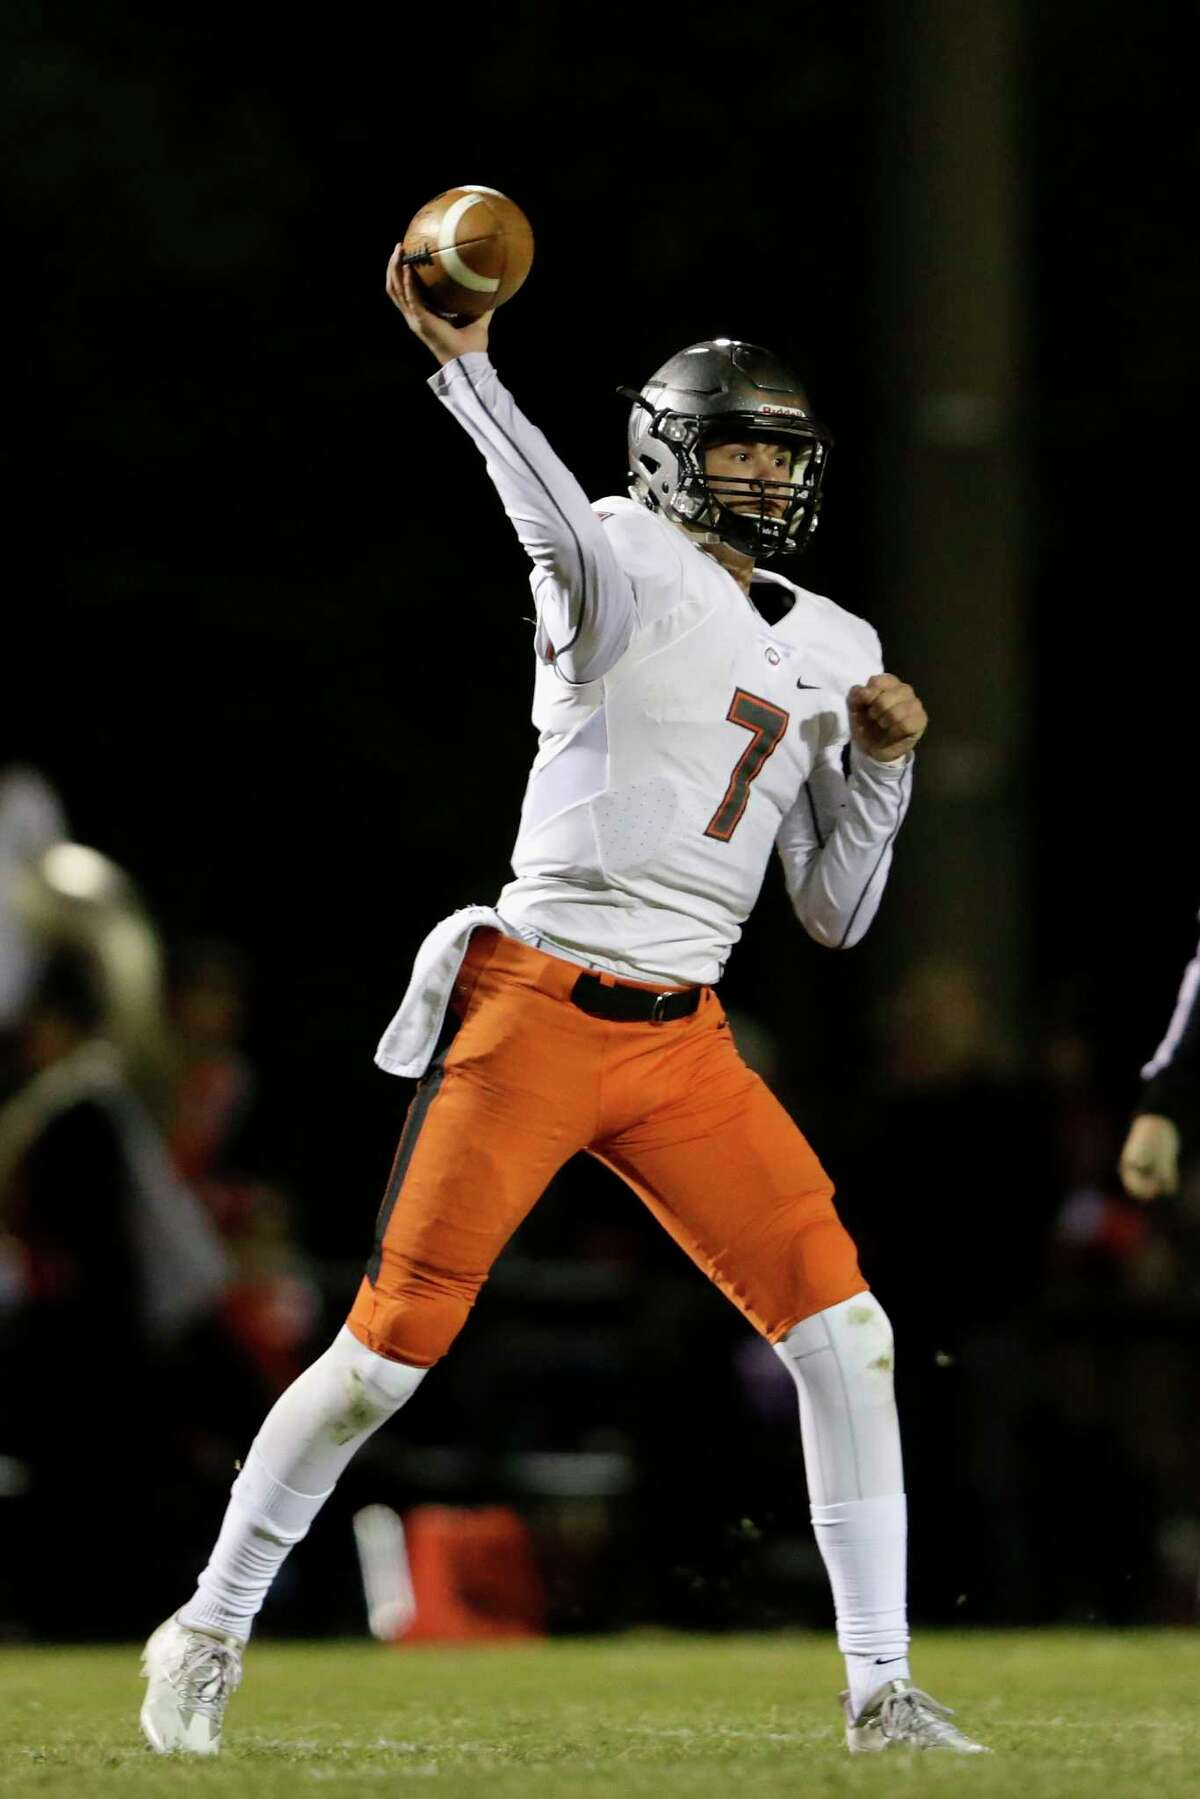 St. Pius' Grant Gunnell will be trying to add to his total of 56 touchdown passes in the TAPPS Division I final.